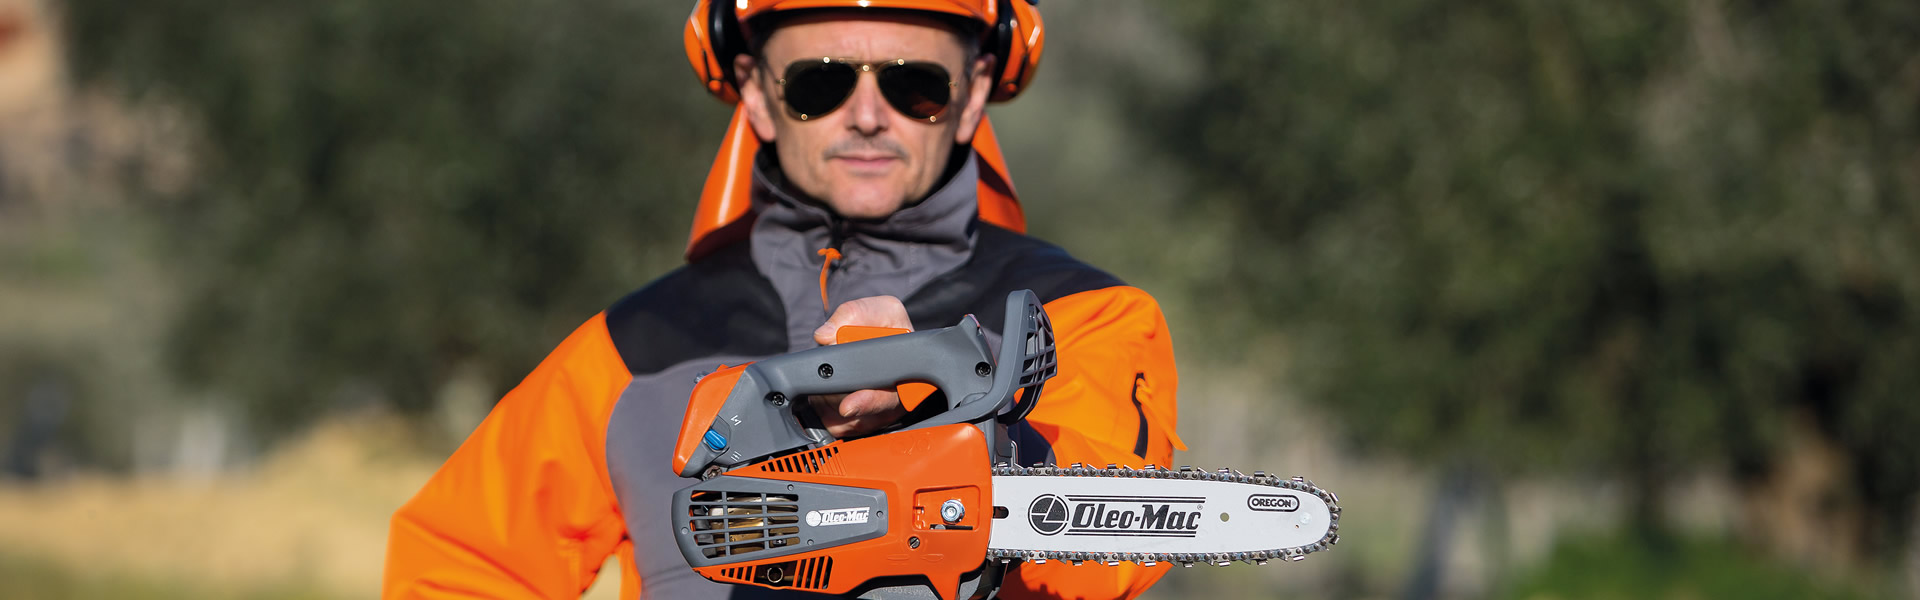 man with a chainsaw